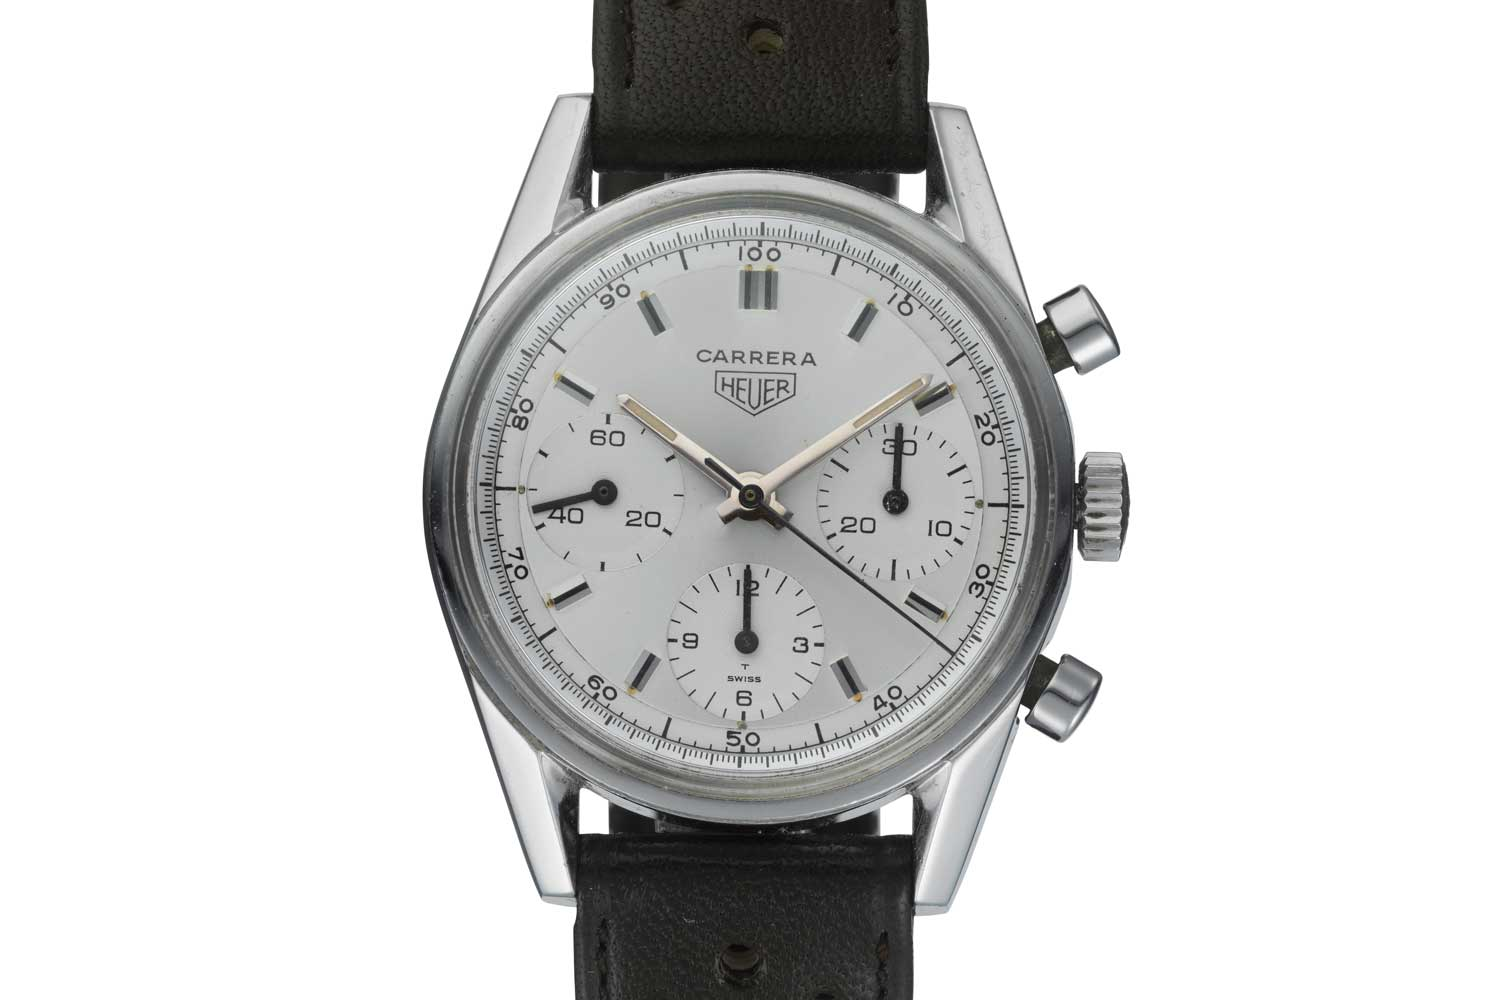 The original Heuer ref. 2447 which the 2020 TAG Heuer Carrera 160 Years Silver Limited Edition is inspired by